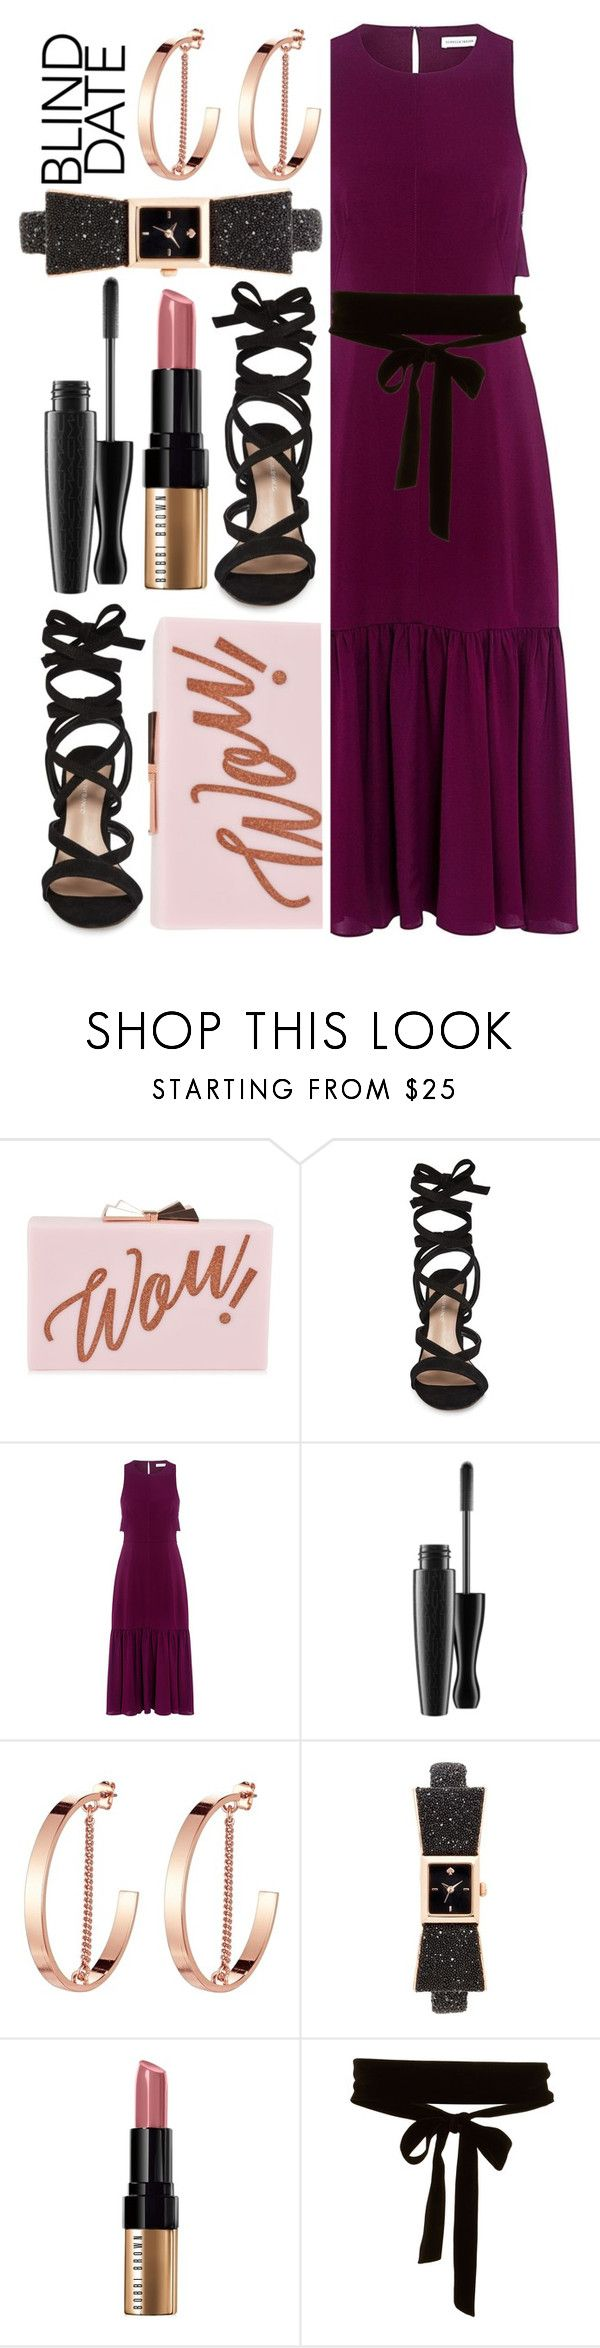 """""""Dress to Impress: Blind Date"""" by alaria ❤ liked on Polyvore featuring Ted Baker, Tony Bianco, Rebecca Taylor, Jenny Bird, Kate Spade, Bobbi Brown Cosmetics and blinddate"""